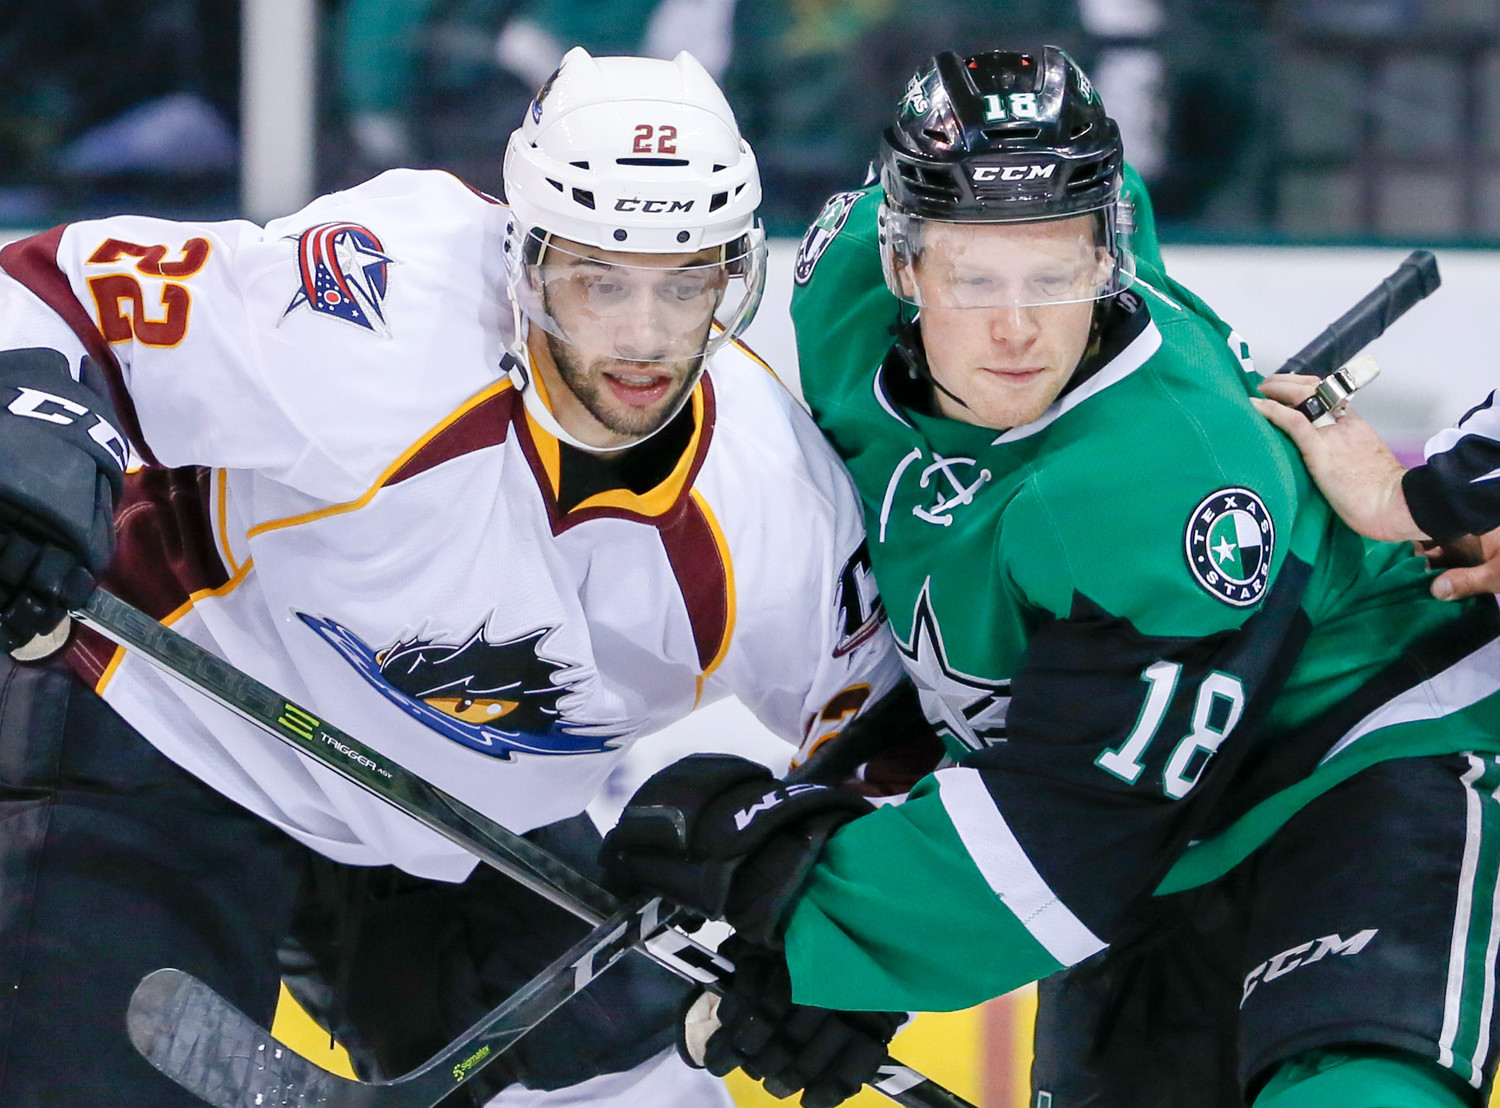 Sheldon Dries had a goal and an assist, but the Texas Stars lost to the Cleveland Monsters 6-5 in overtime on Friday night.